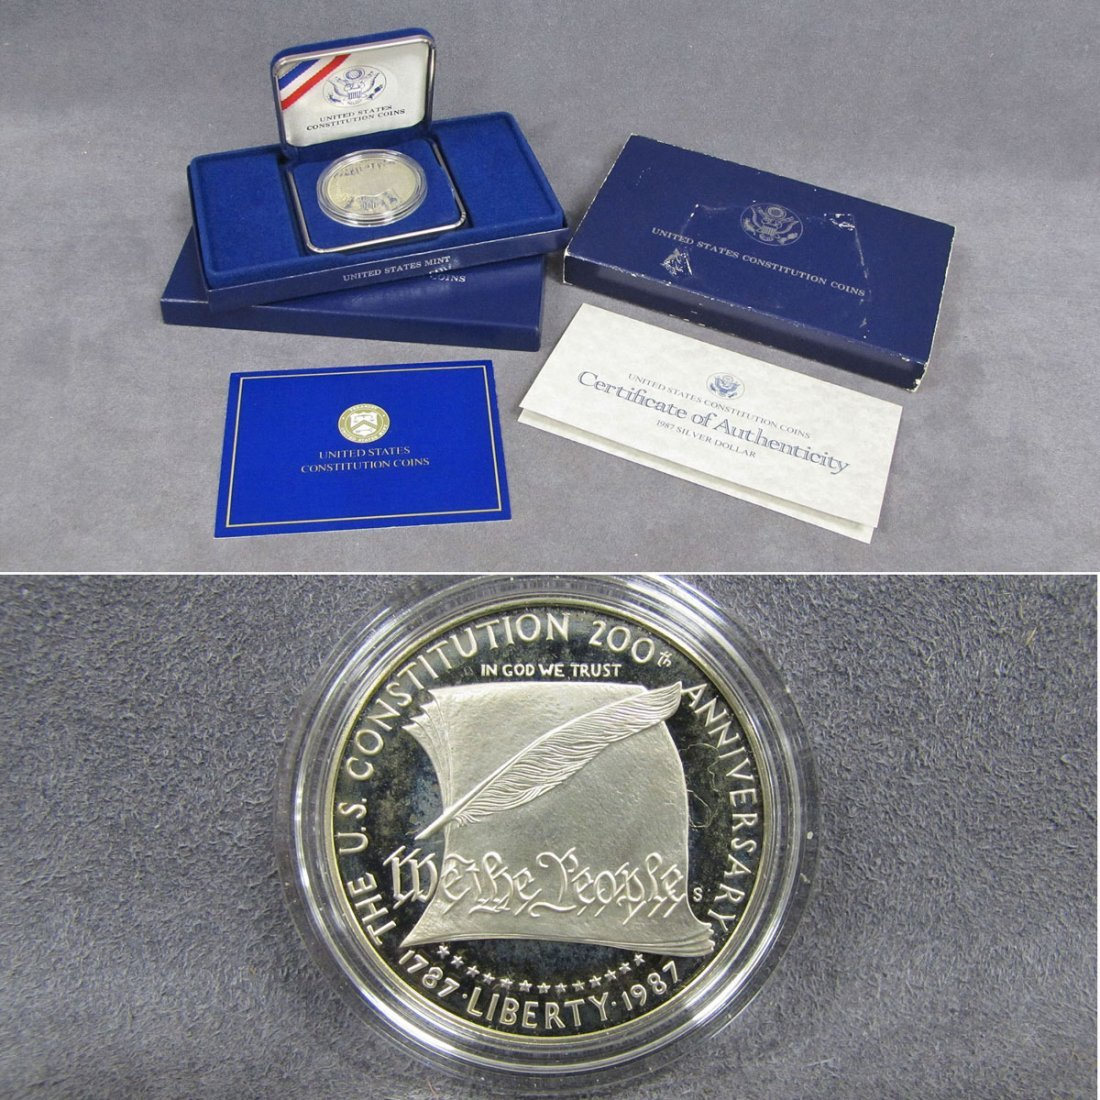 67: UNITED STATES COMMEMORATIVE SILVER DOLLAR COIN